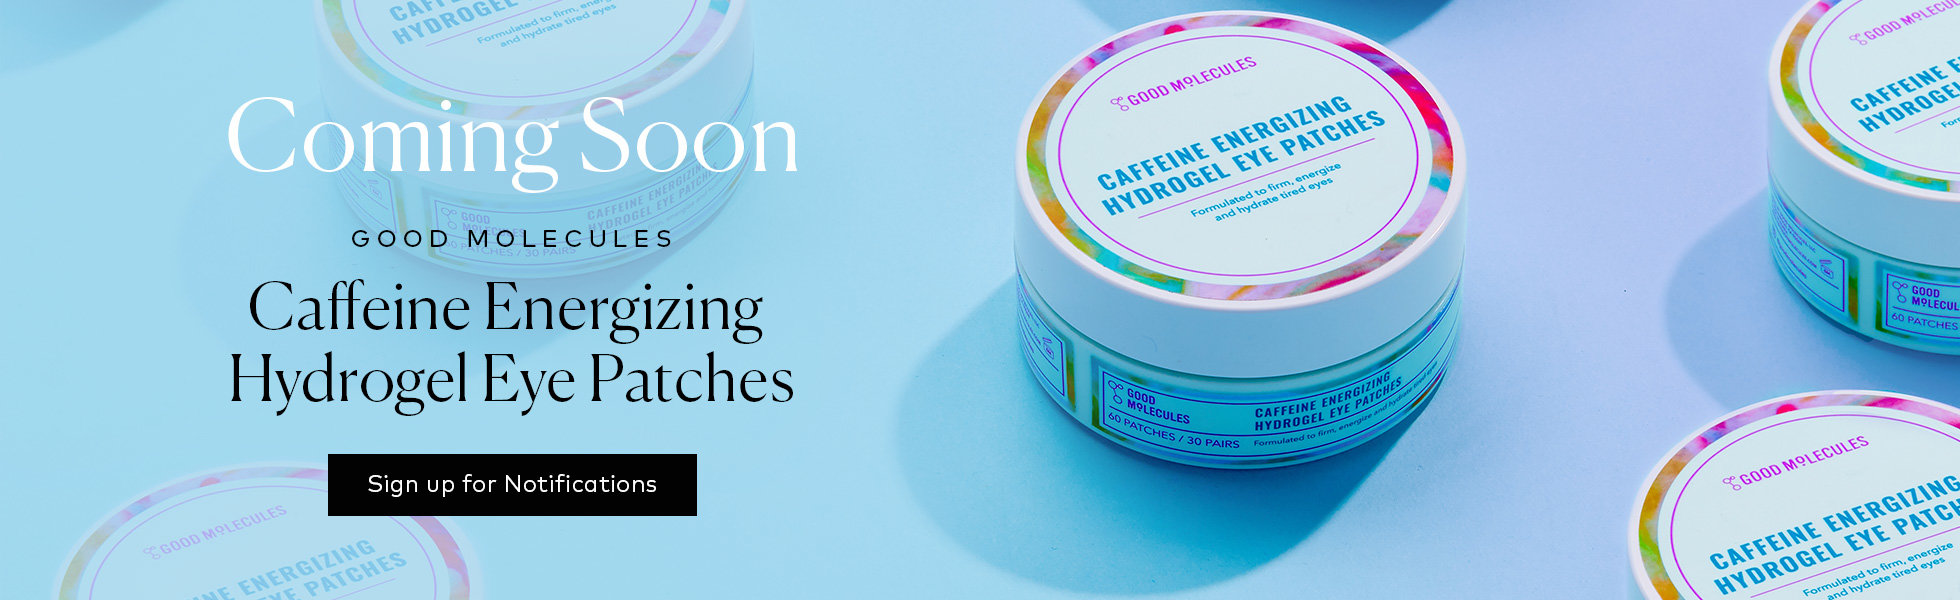 Sign up for notifications about Good Molecules' newest launch: